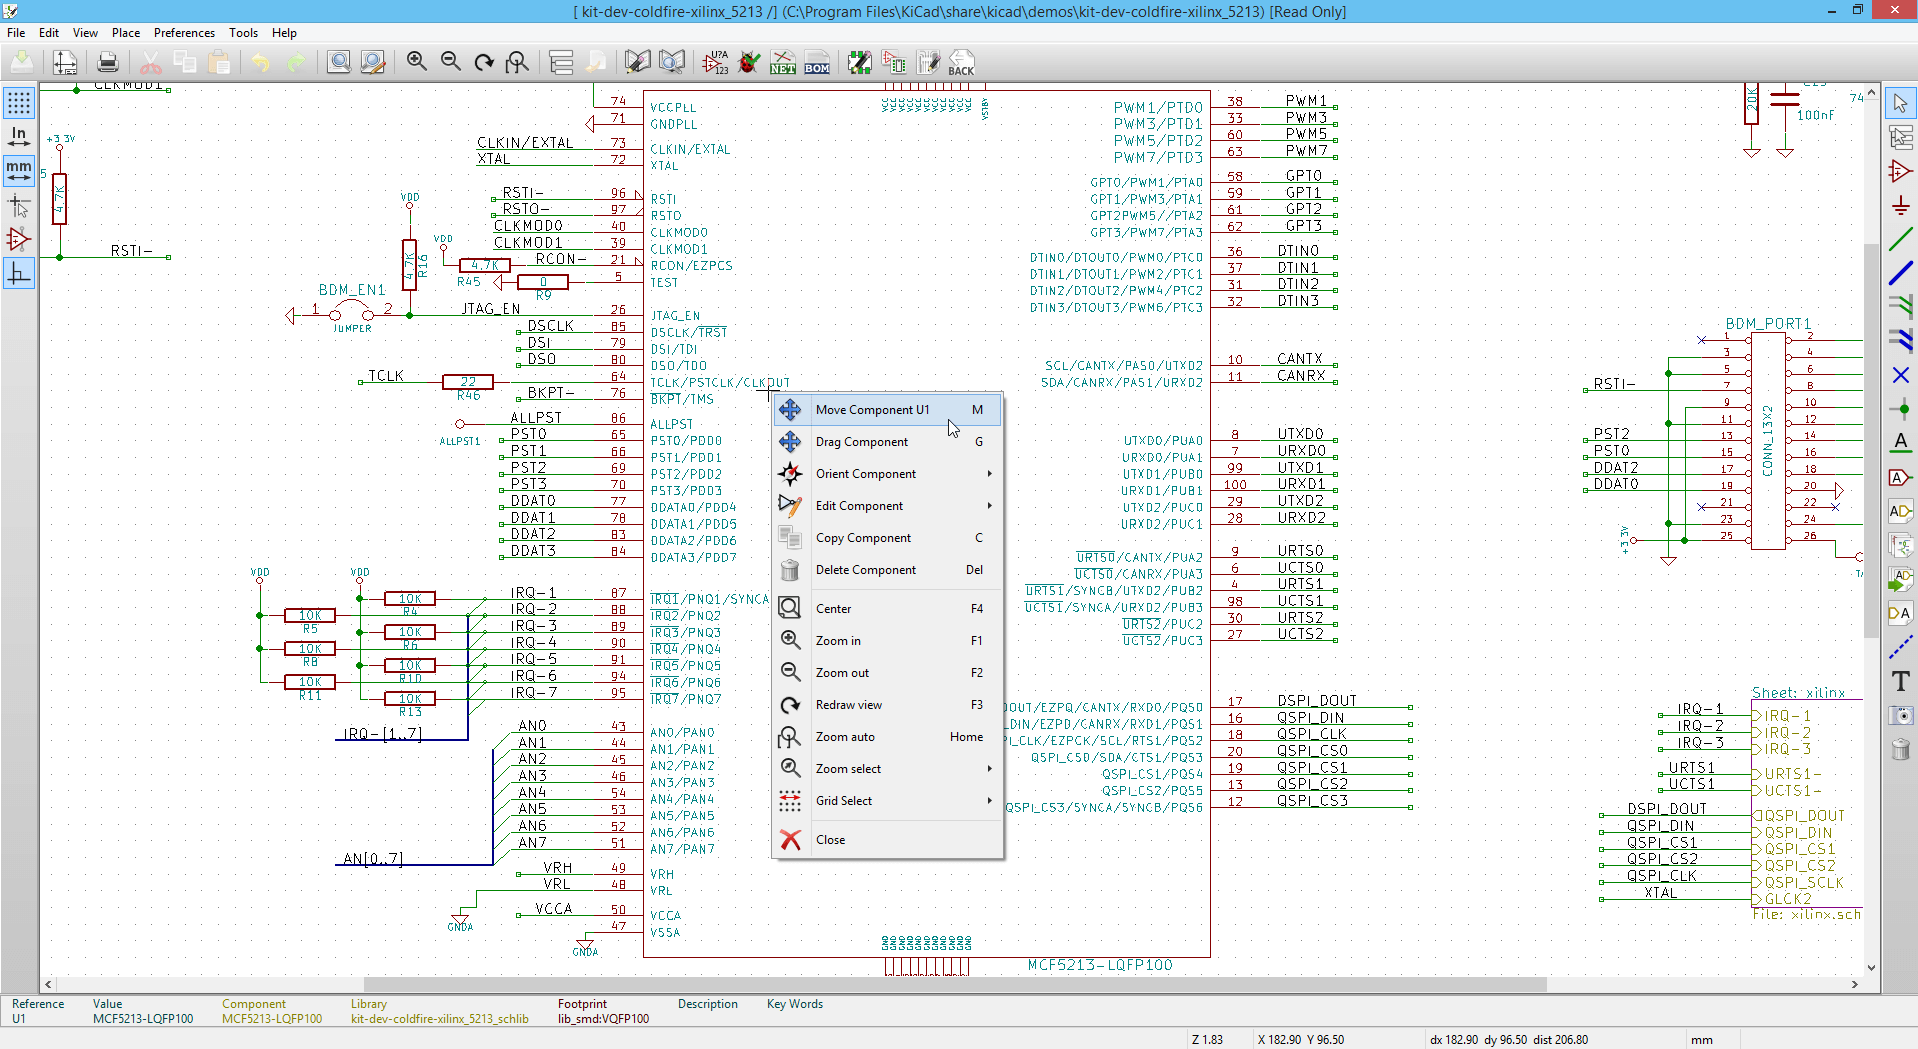 Screenshot showing component context menu with various manipulation options